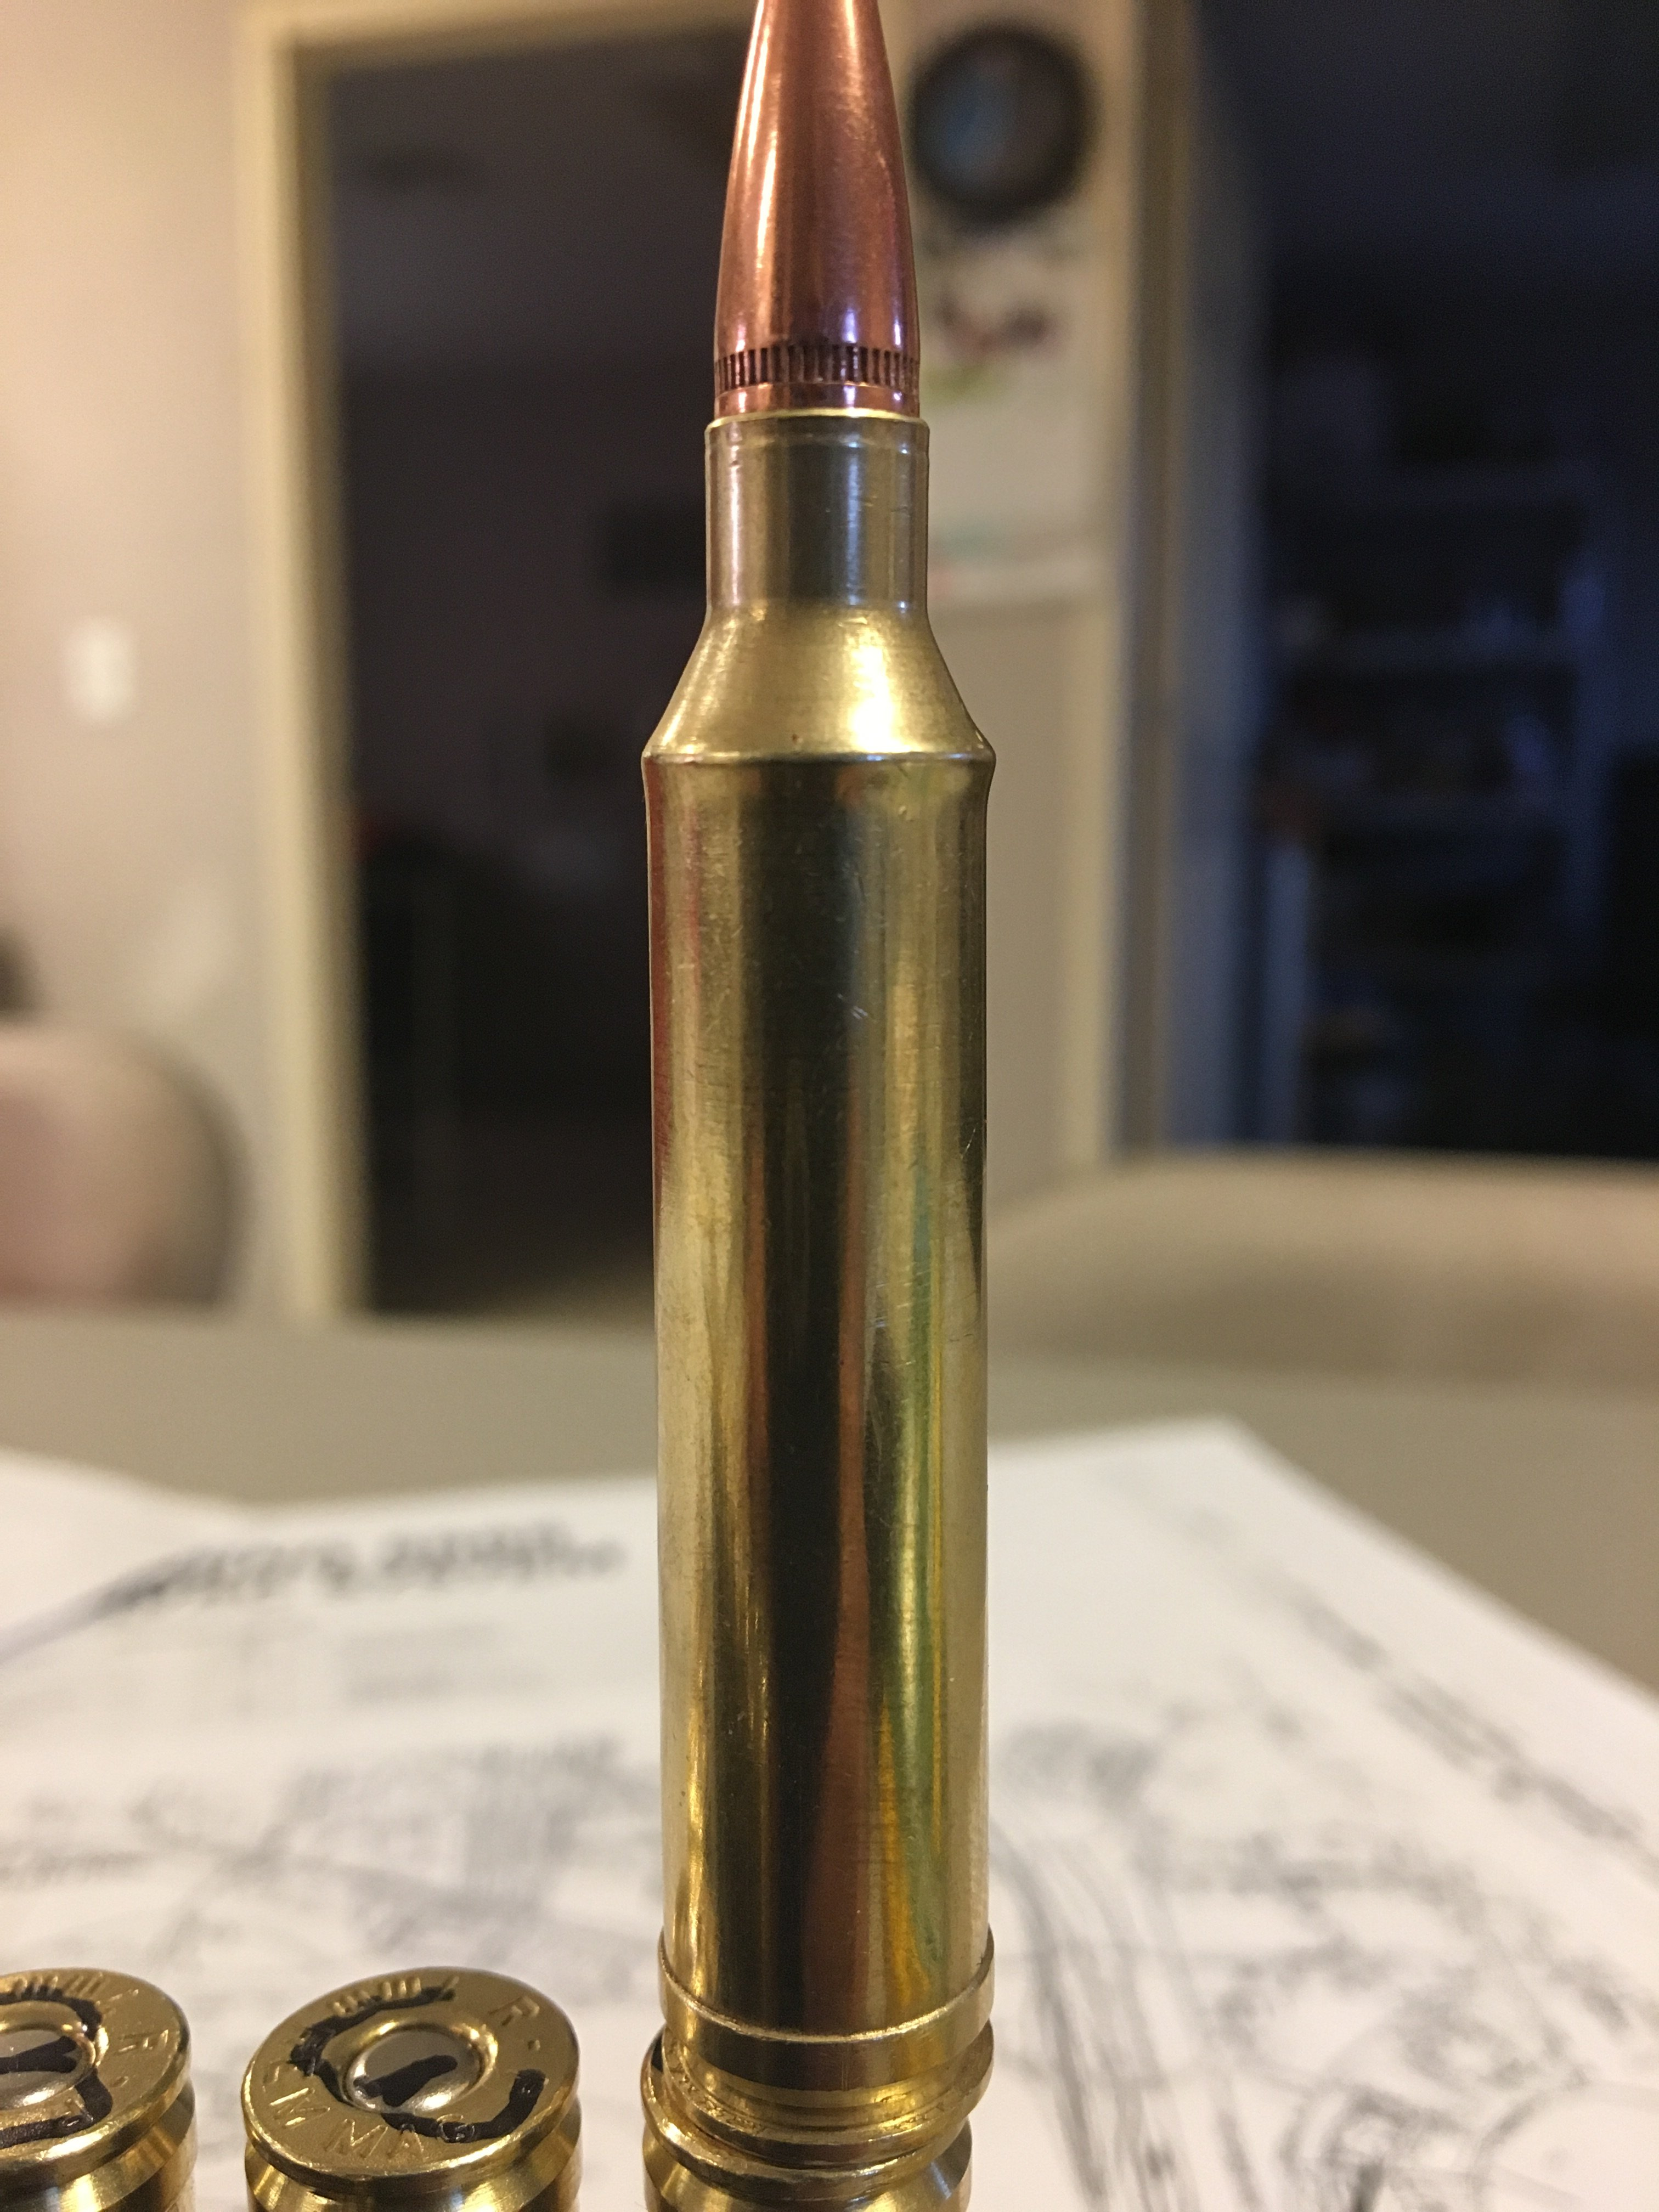 7mm remington mag sizing problems the firearms forum the buying